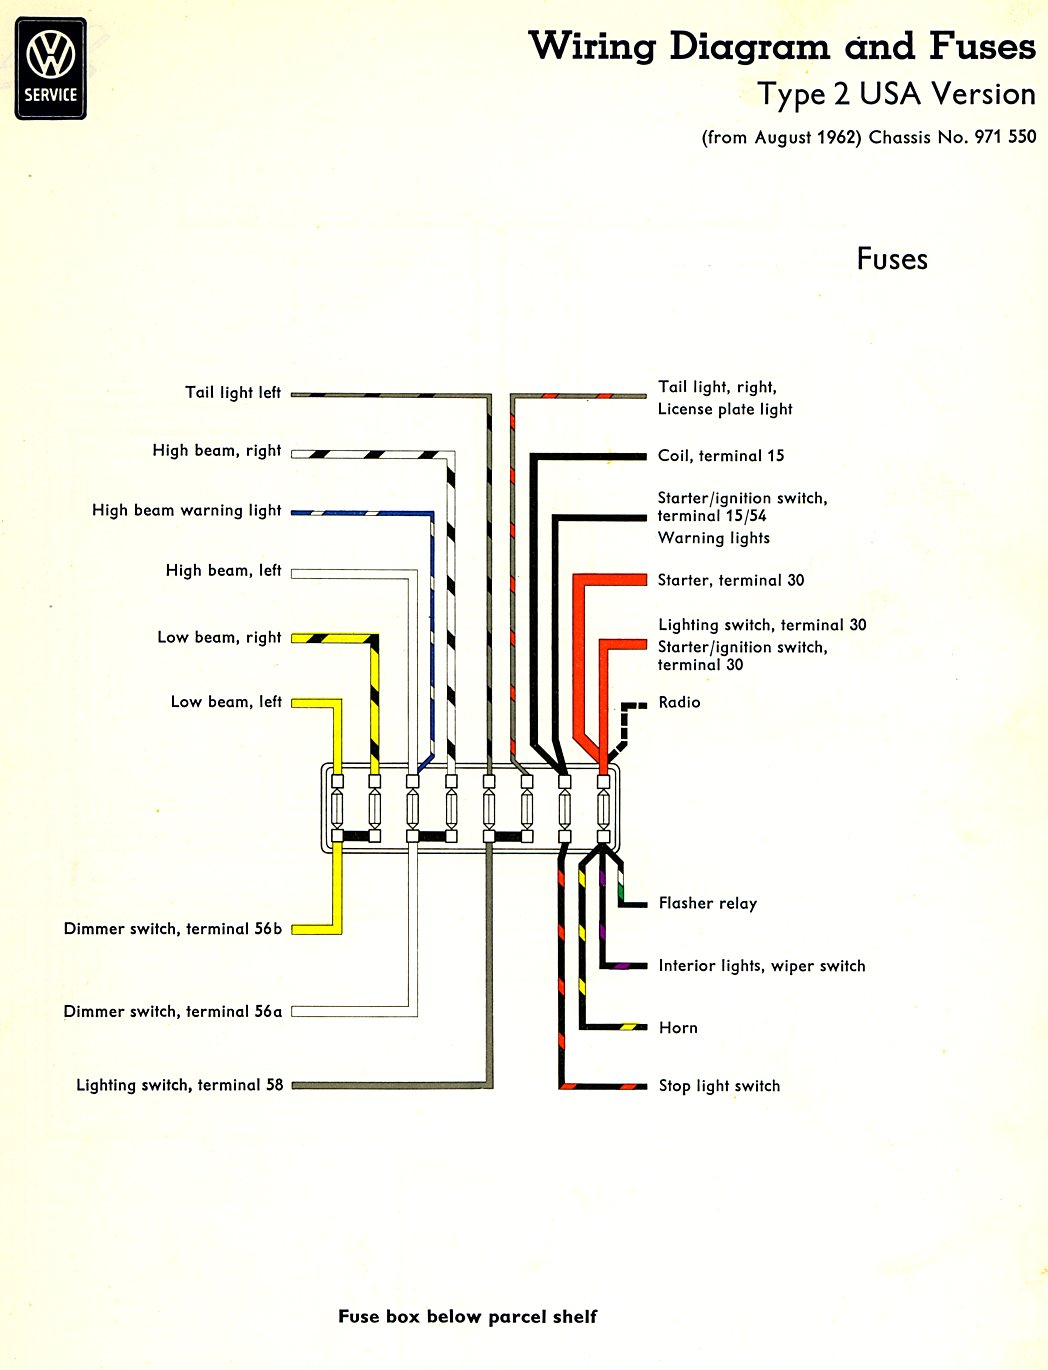 Type 2 Wiring Diagrams 1963 Volkswagen Headlight